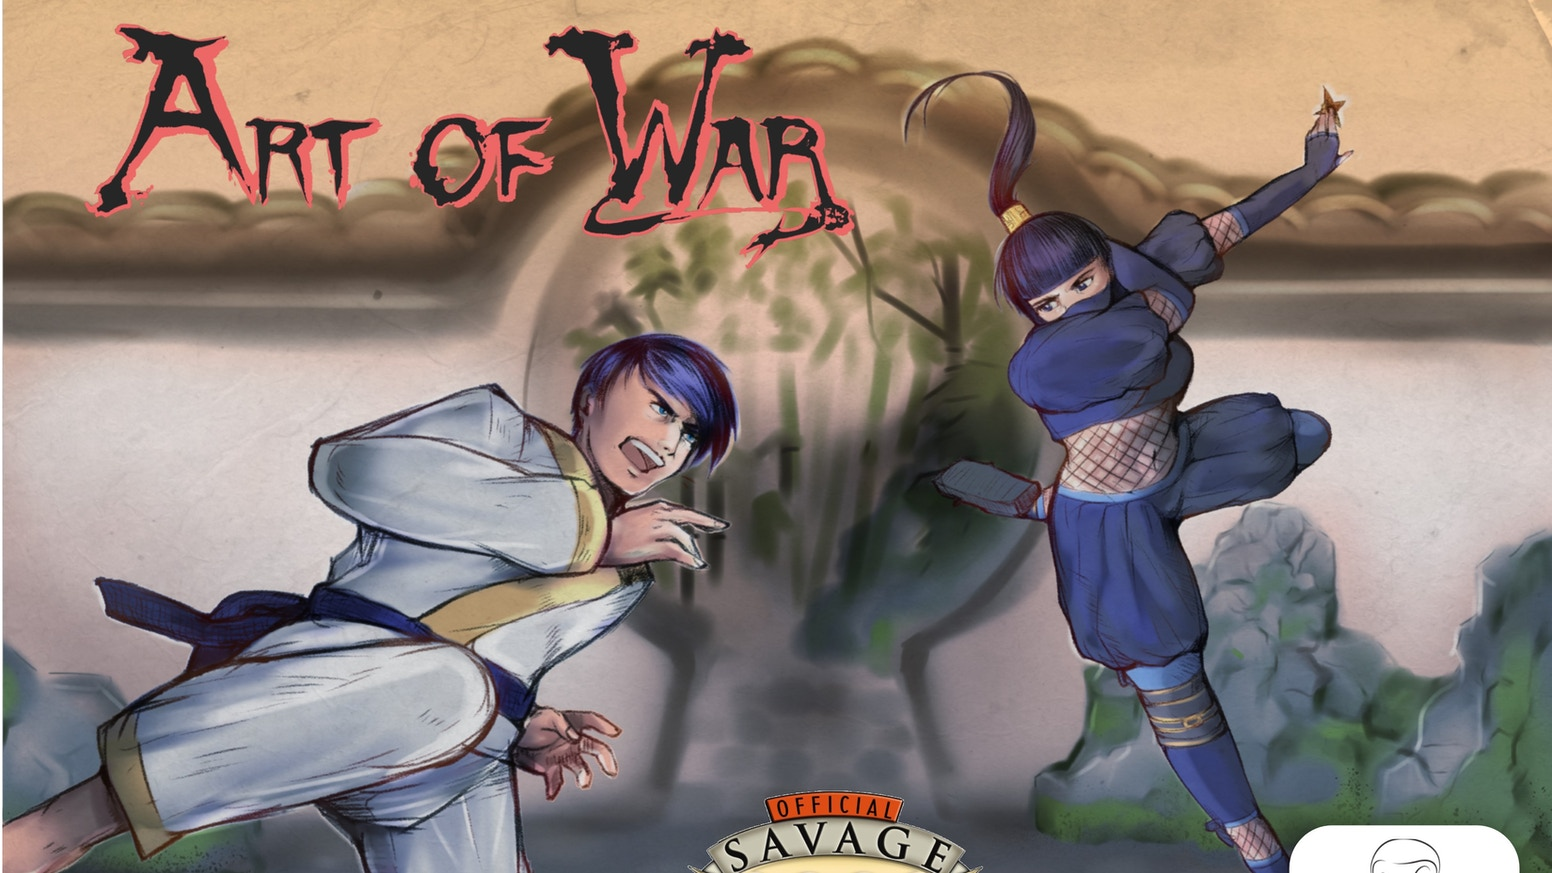 Art of War (relaunch): The Martial Arts Setting in a Fantasy Anime World. Powered by Savage Worlds. Be a Hero. Be a Legend.